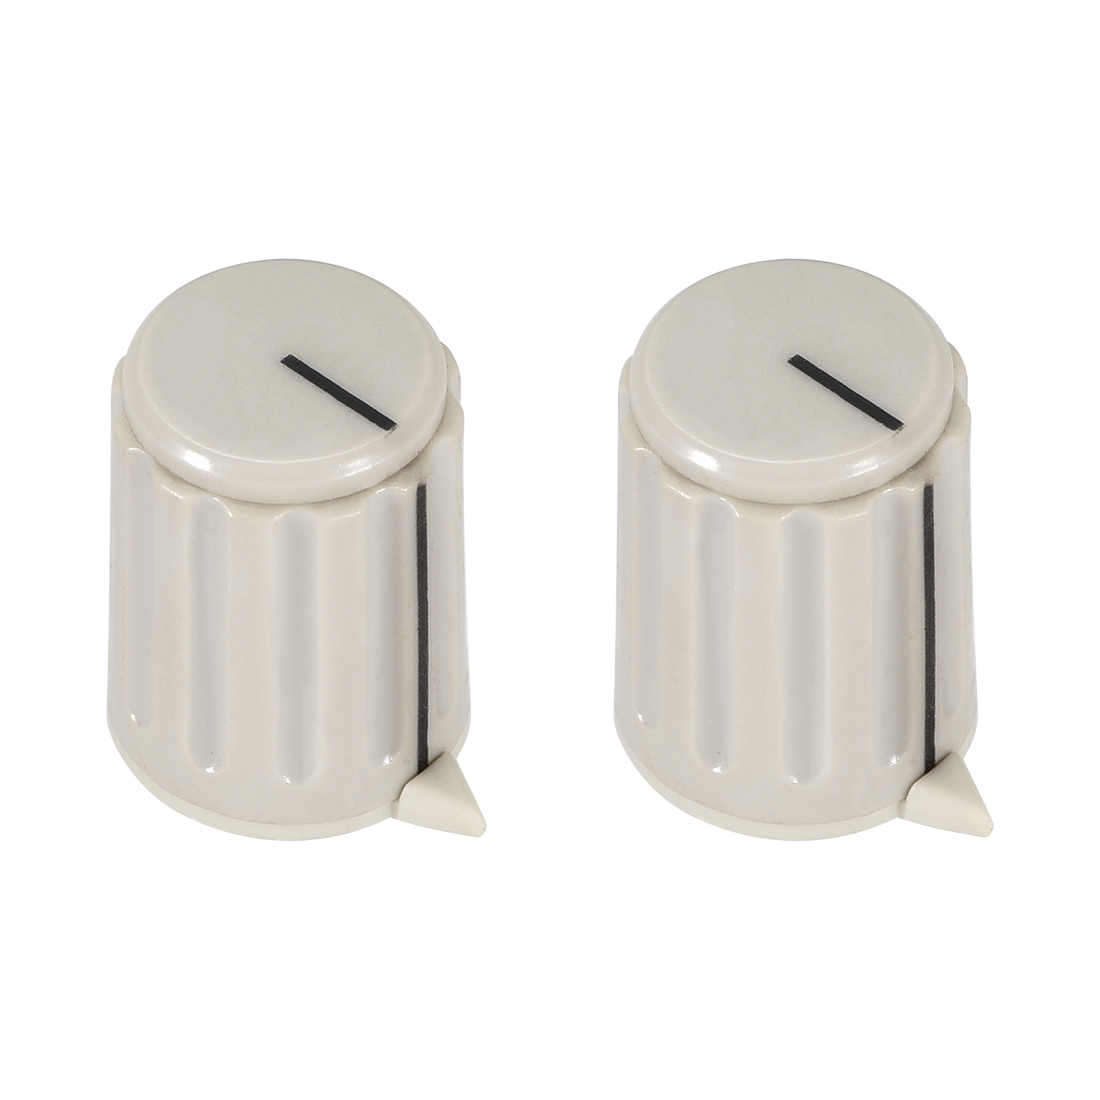 2pcs, 4mm Potentiometer Control Knobs For Electric Guitar Volume Tone Knobs Gray